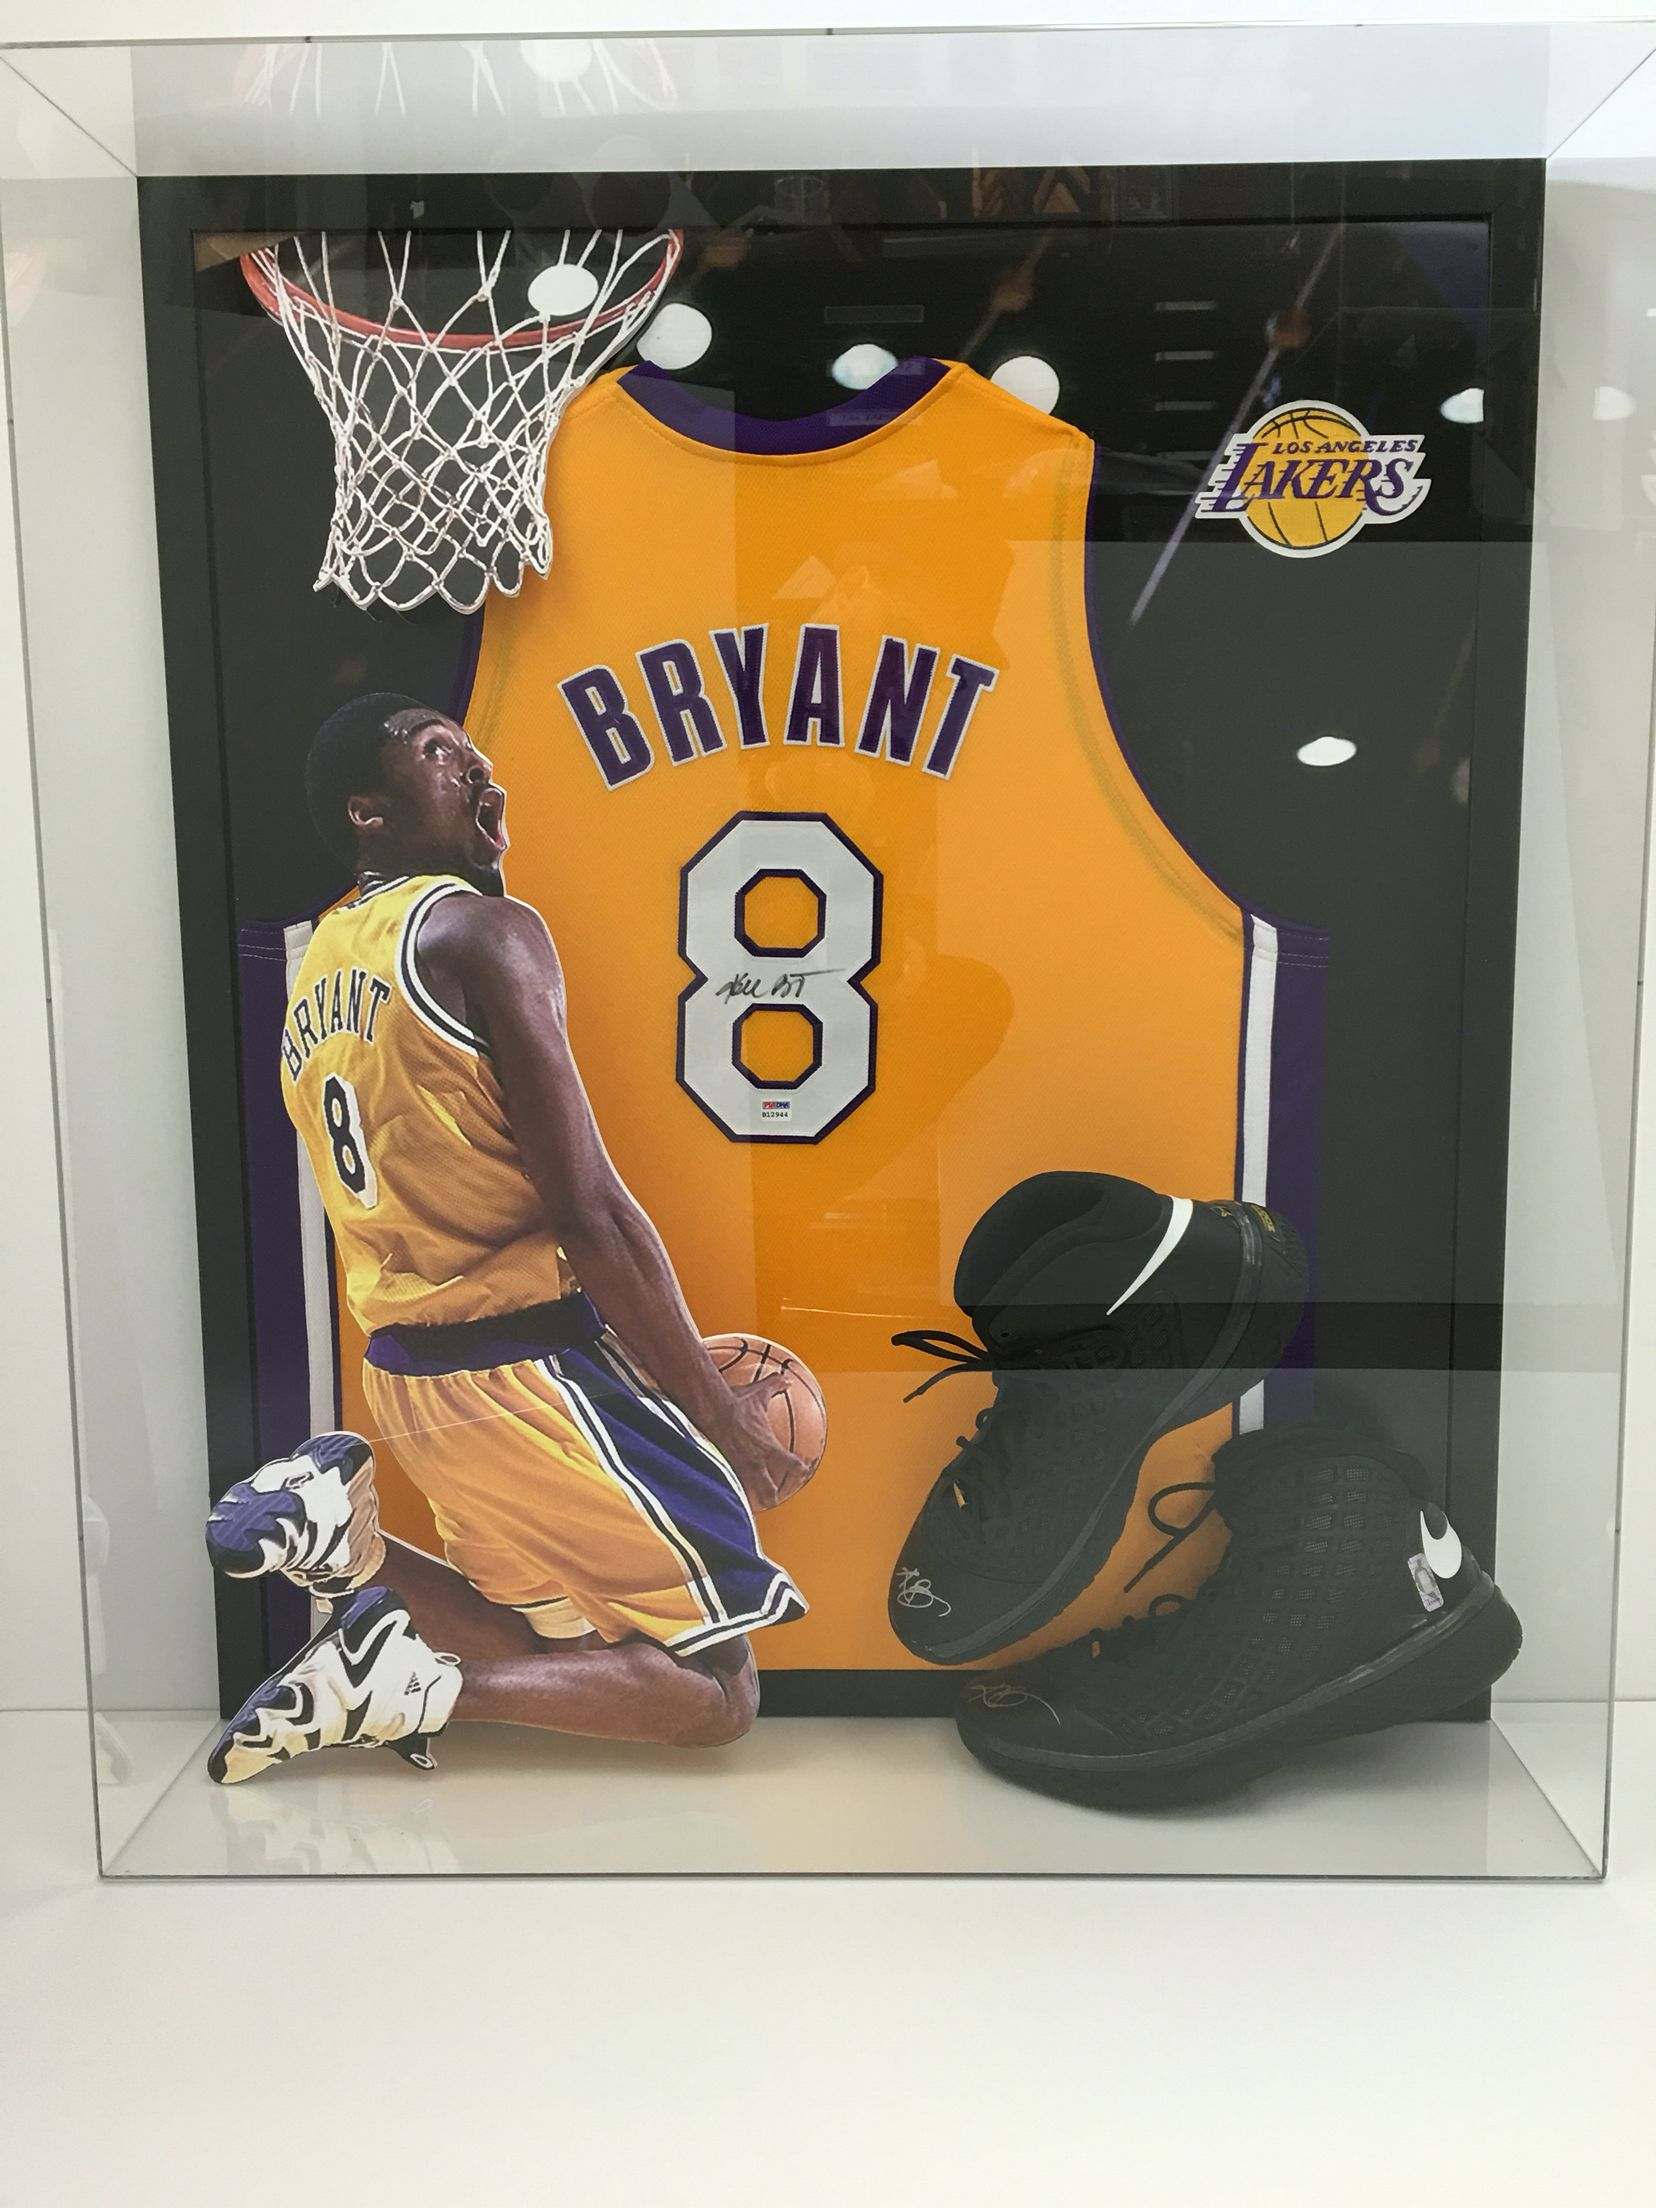 bfb69c57a0c Kobe Bryant three-dimensional Jersey plexi display with autograph Game worn  shoes and Jersey!